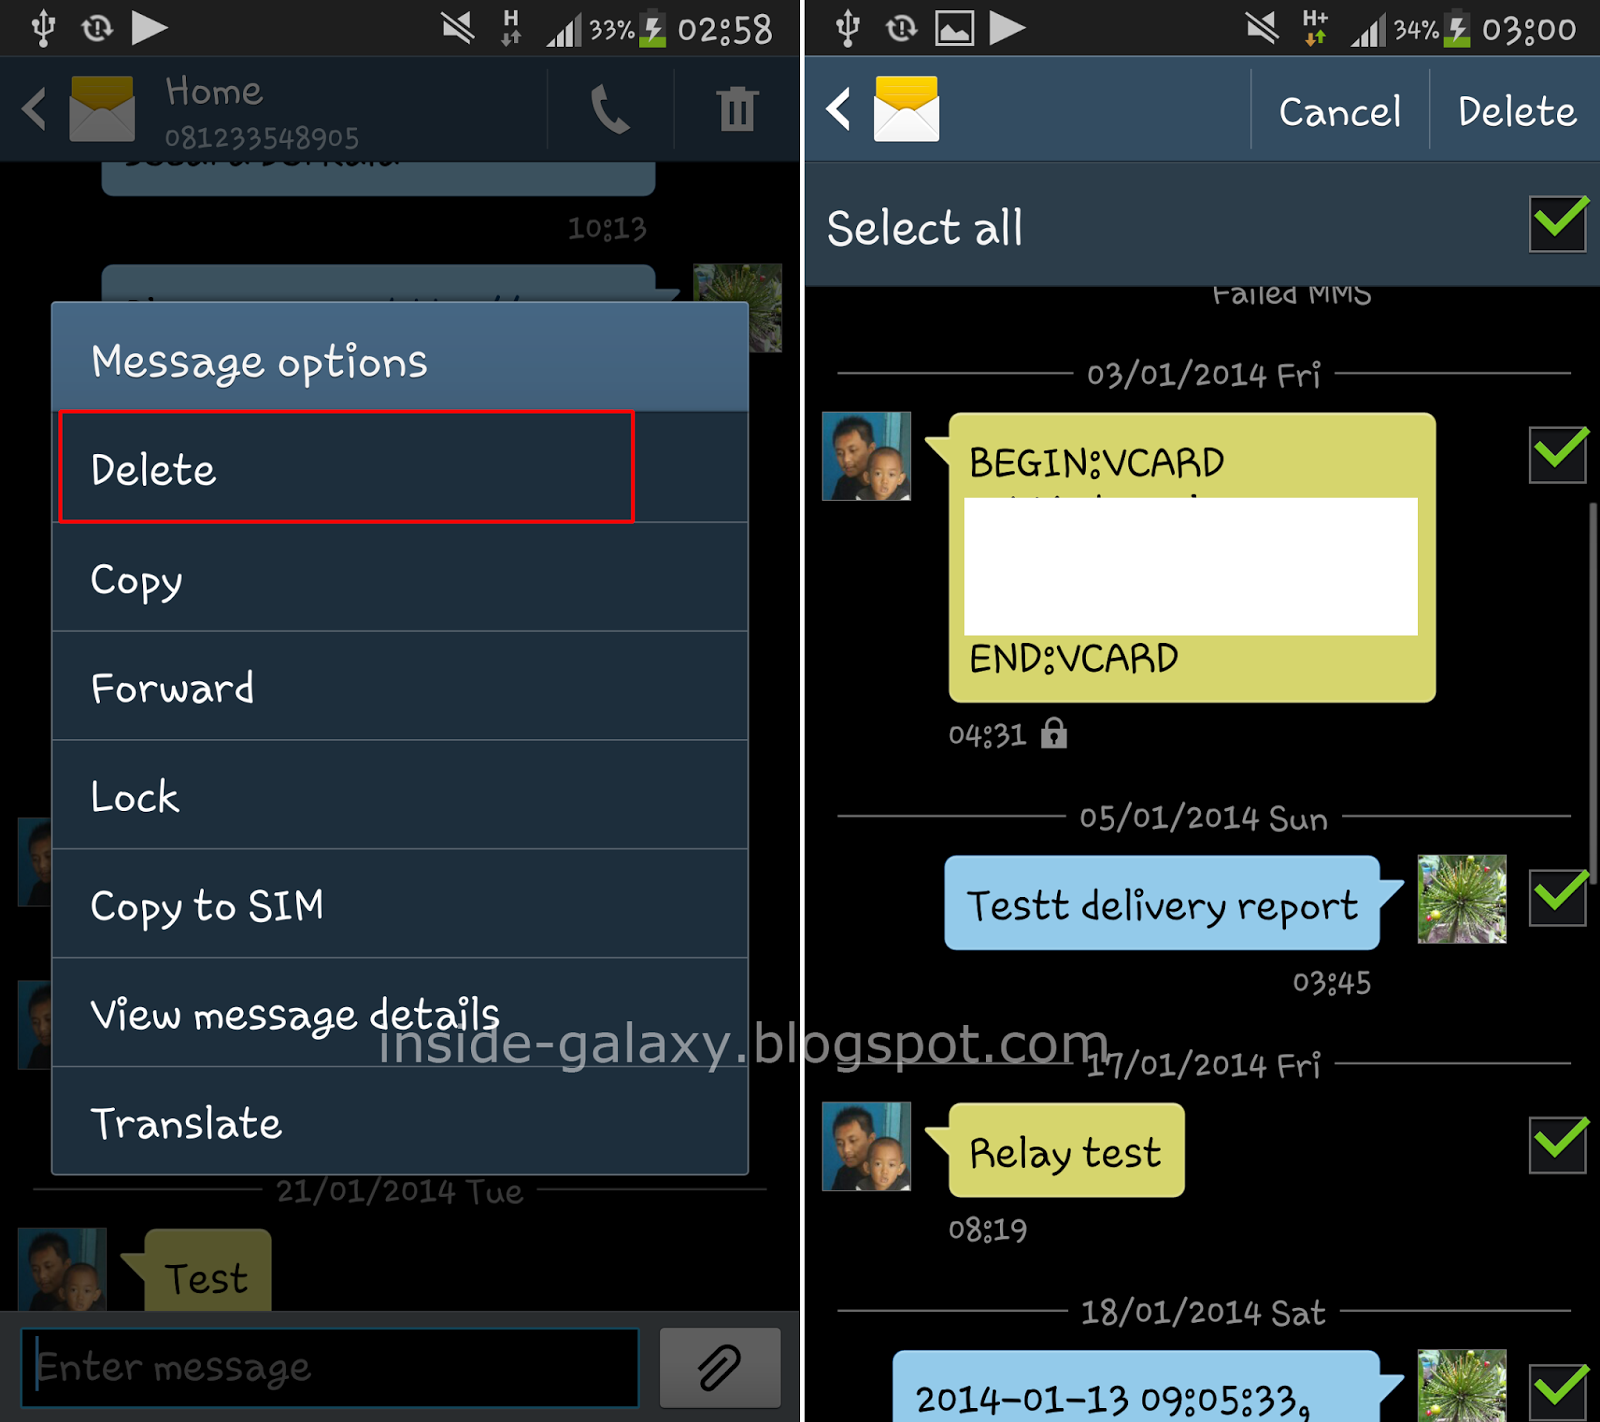 Samsung Galaxy S4: How to Delete Messages